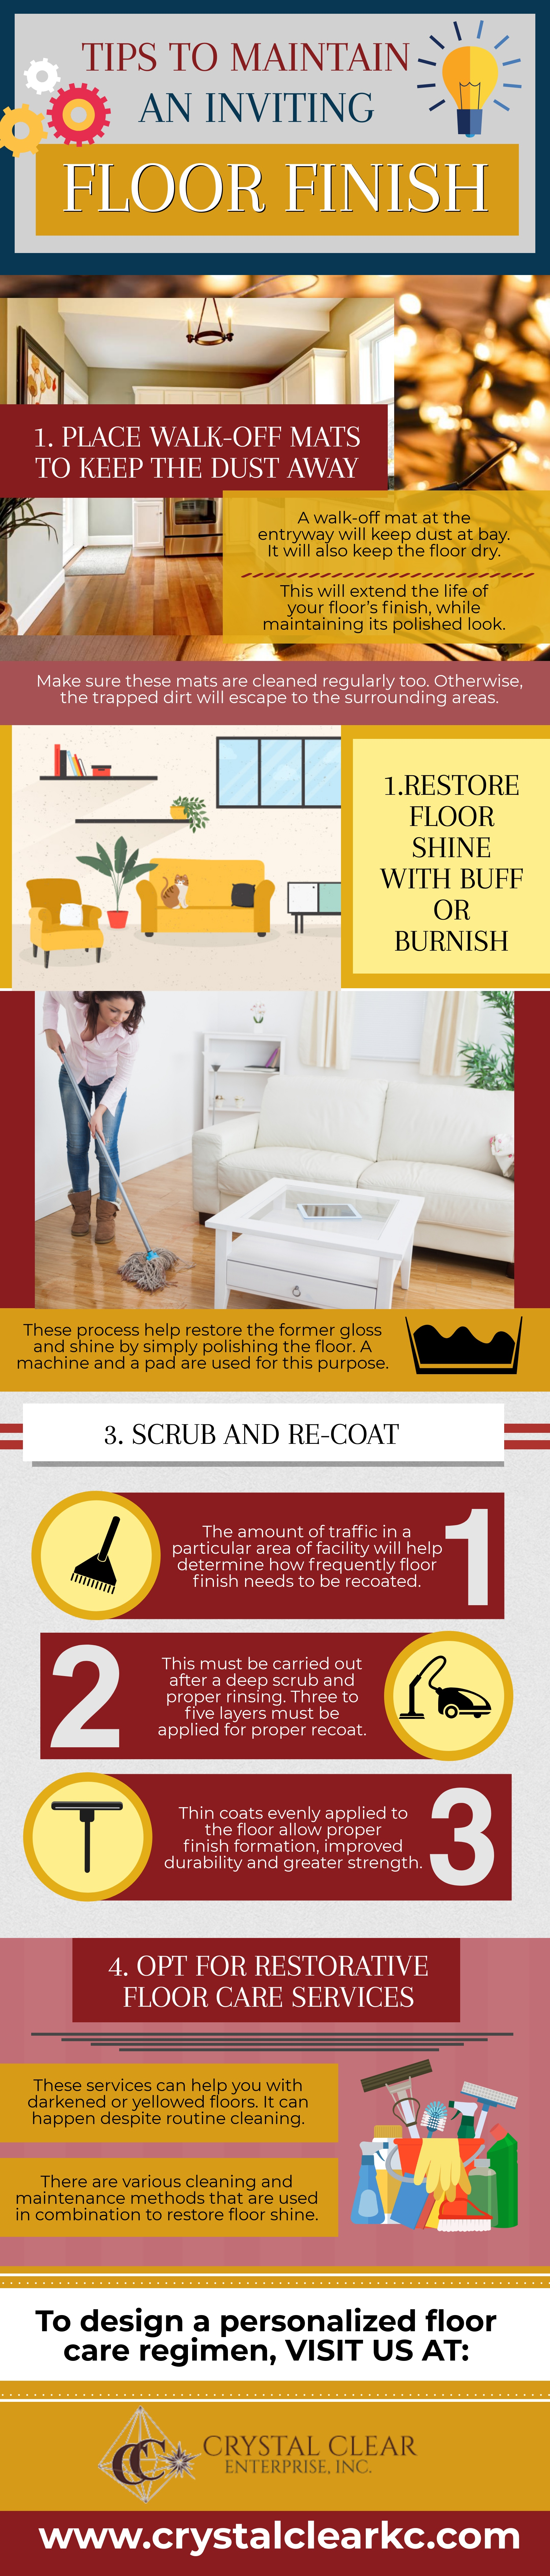 Image showing infographic about janitorial service kansas city mo